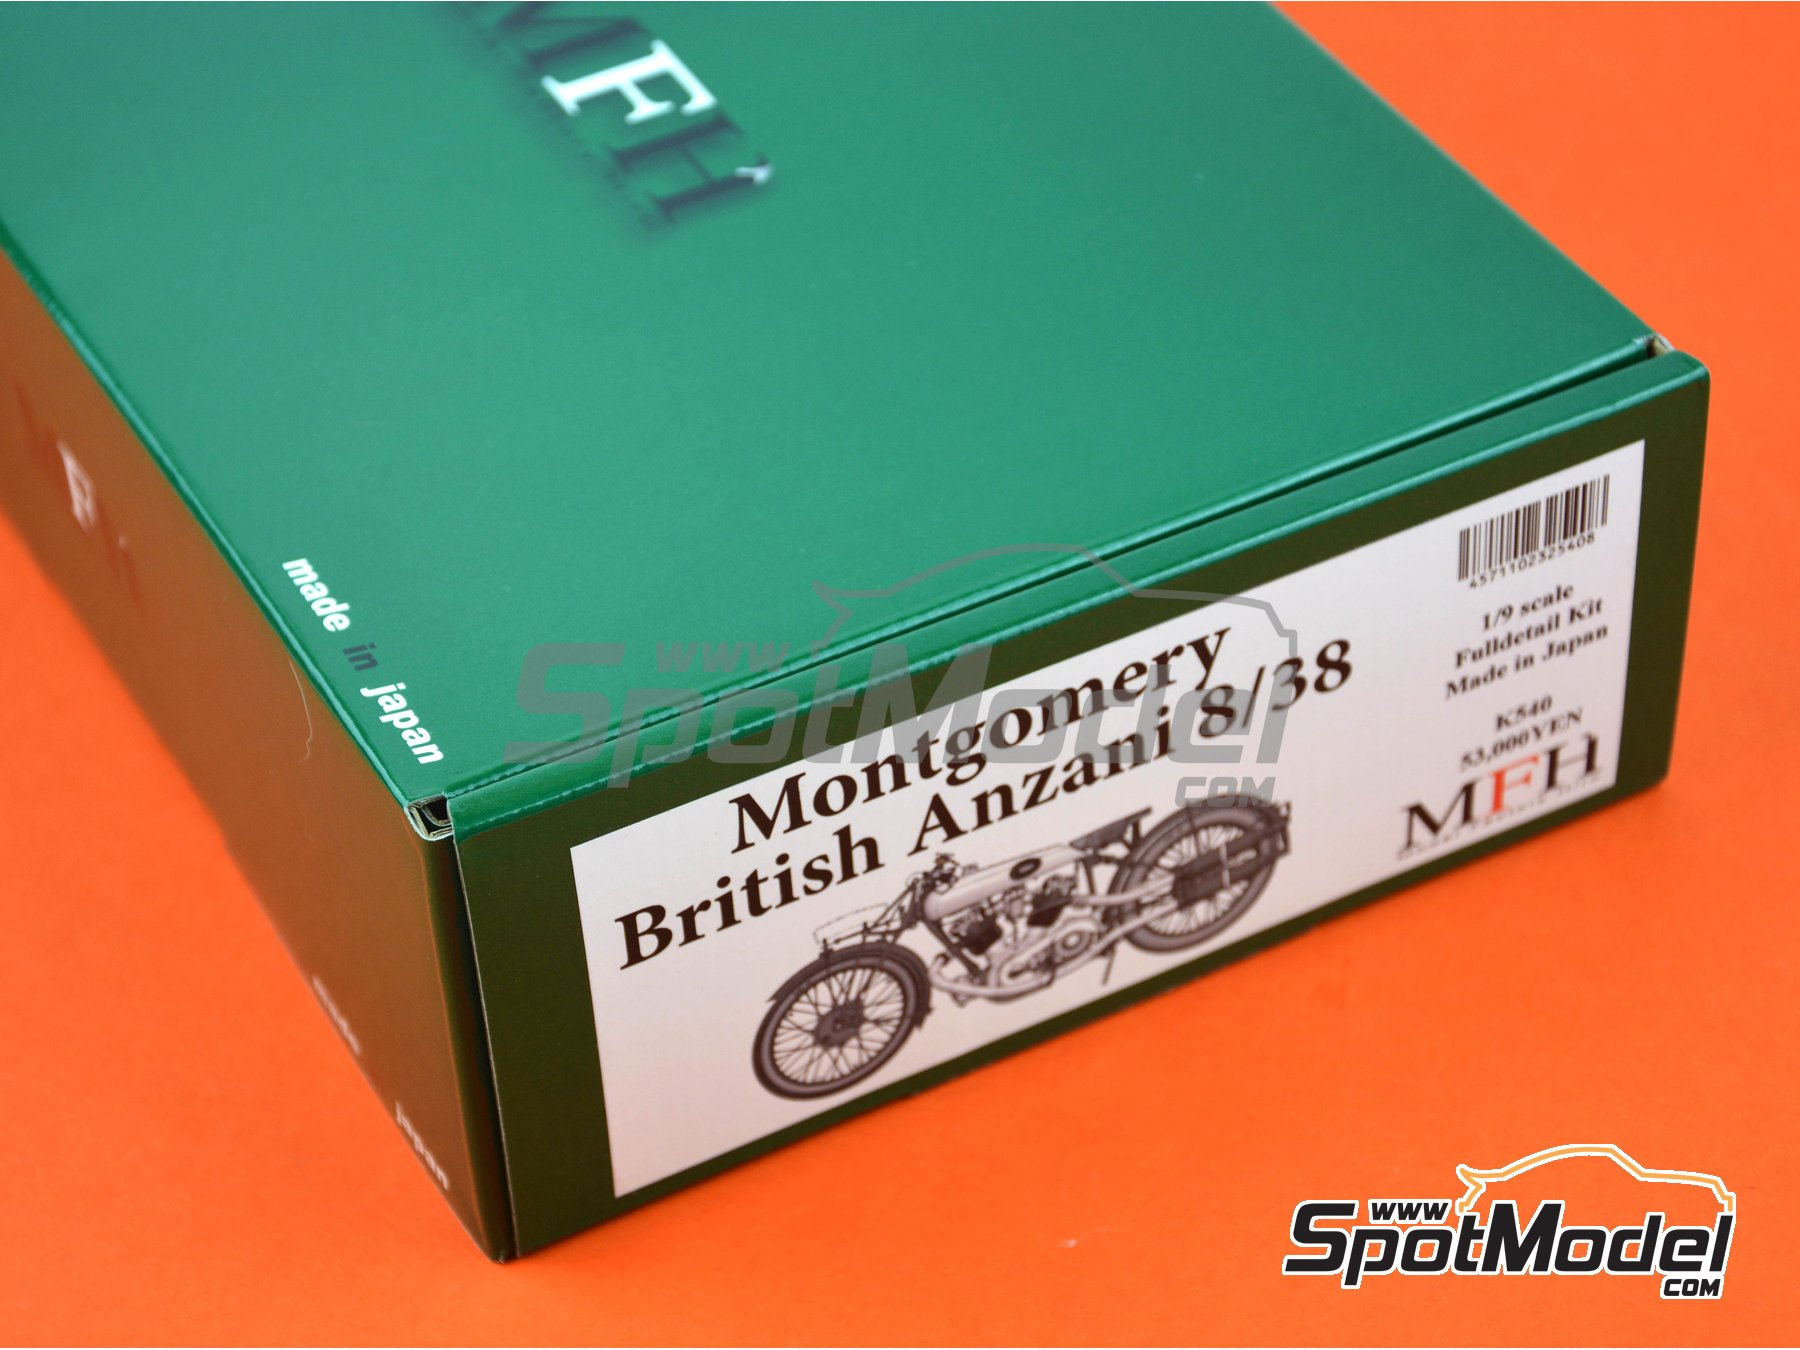 ... Image 26: Montgomery British Anzani 8/38hp   1920 | Model Bike Kit In